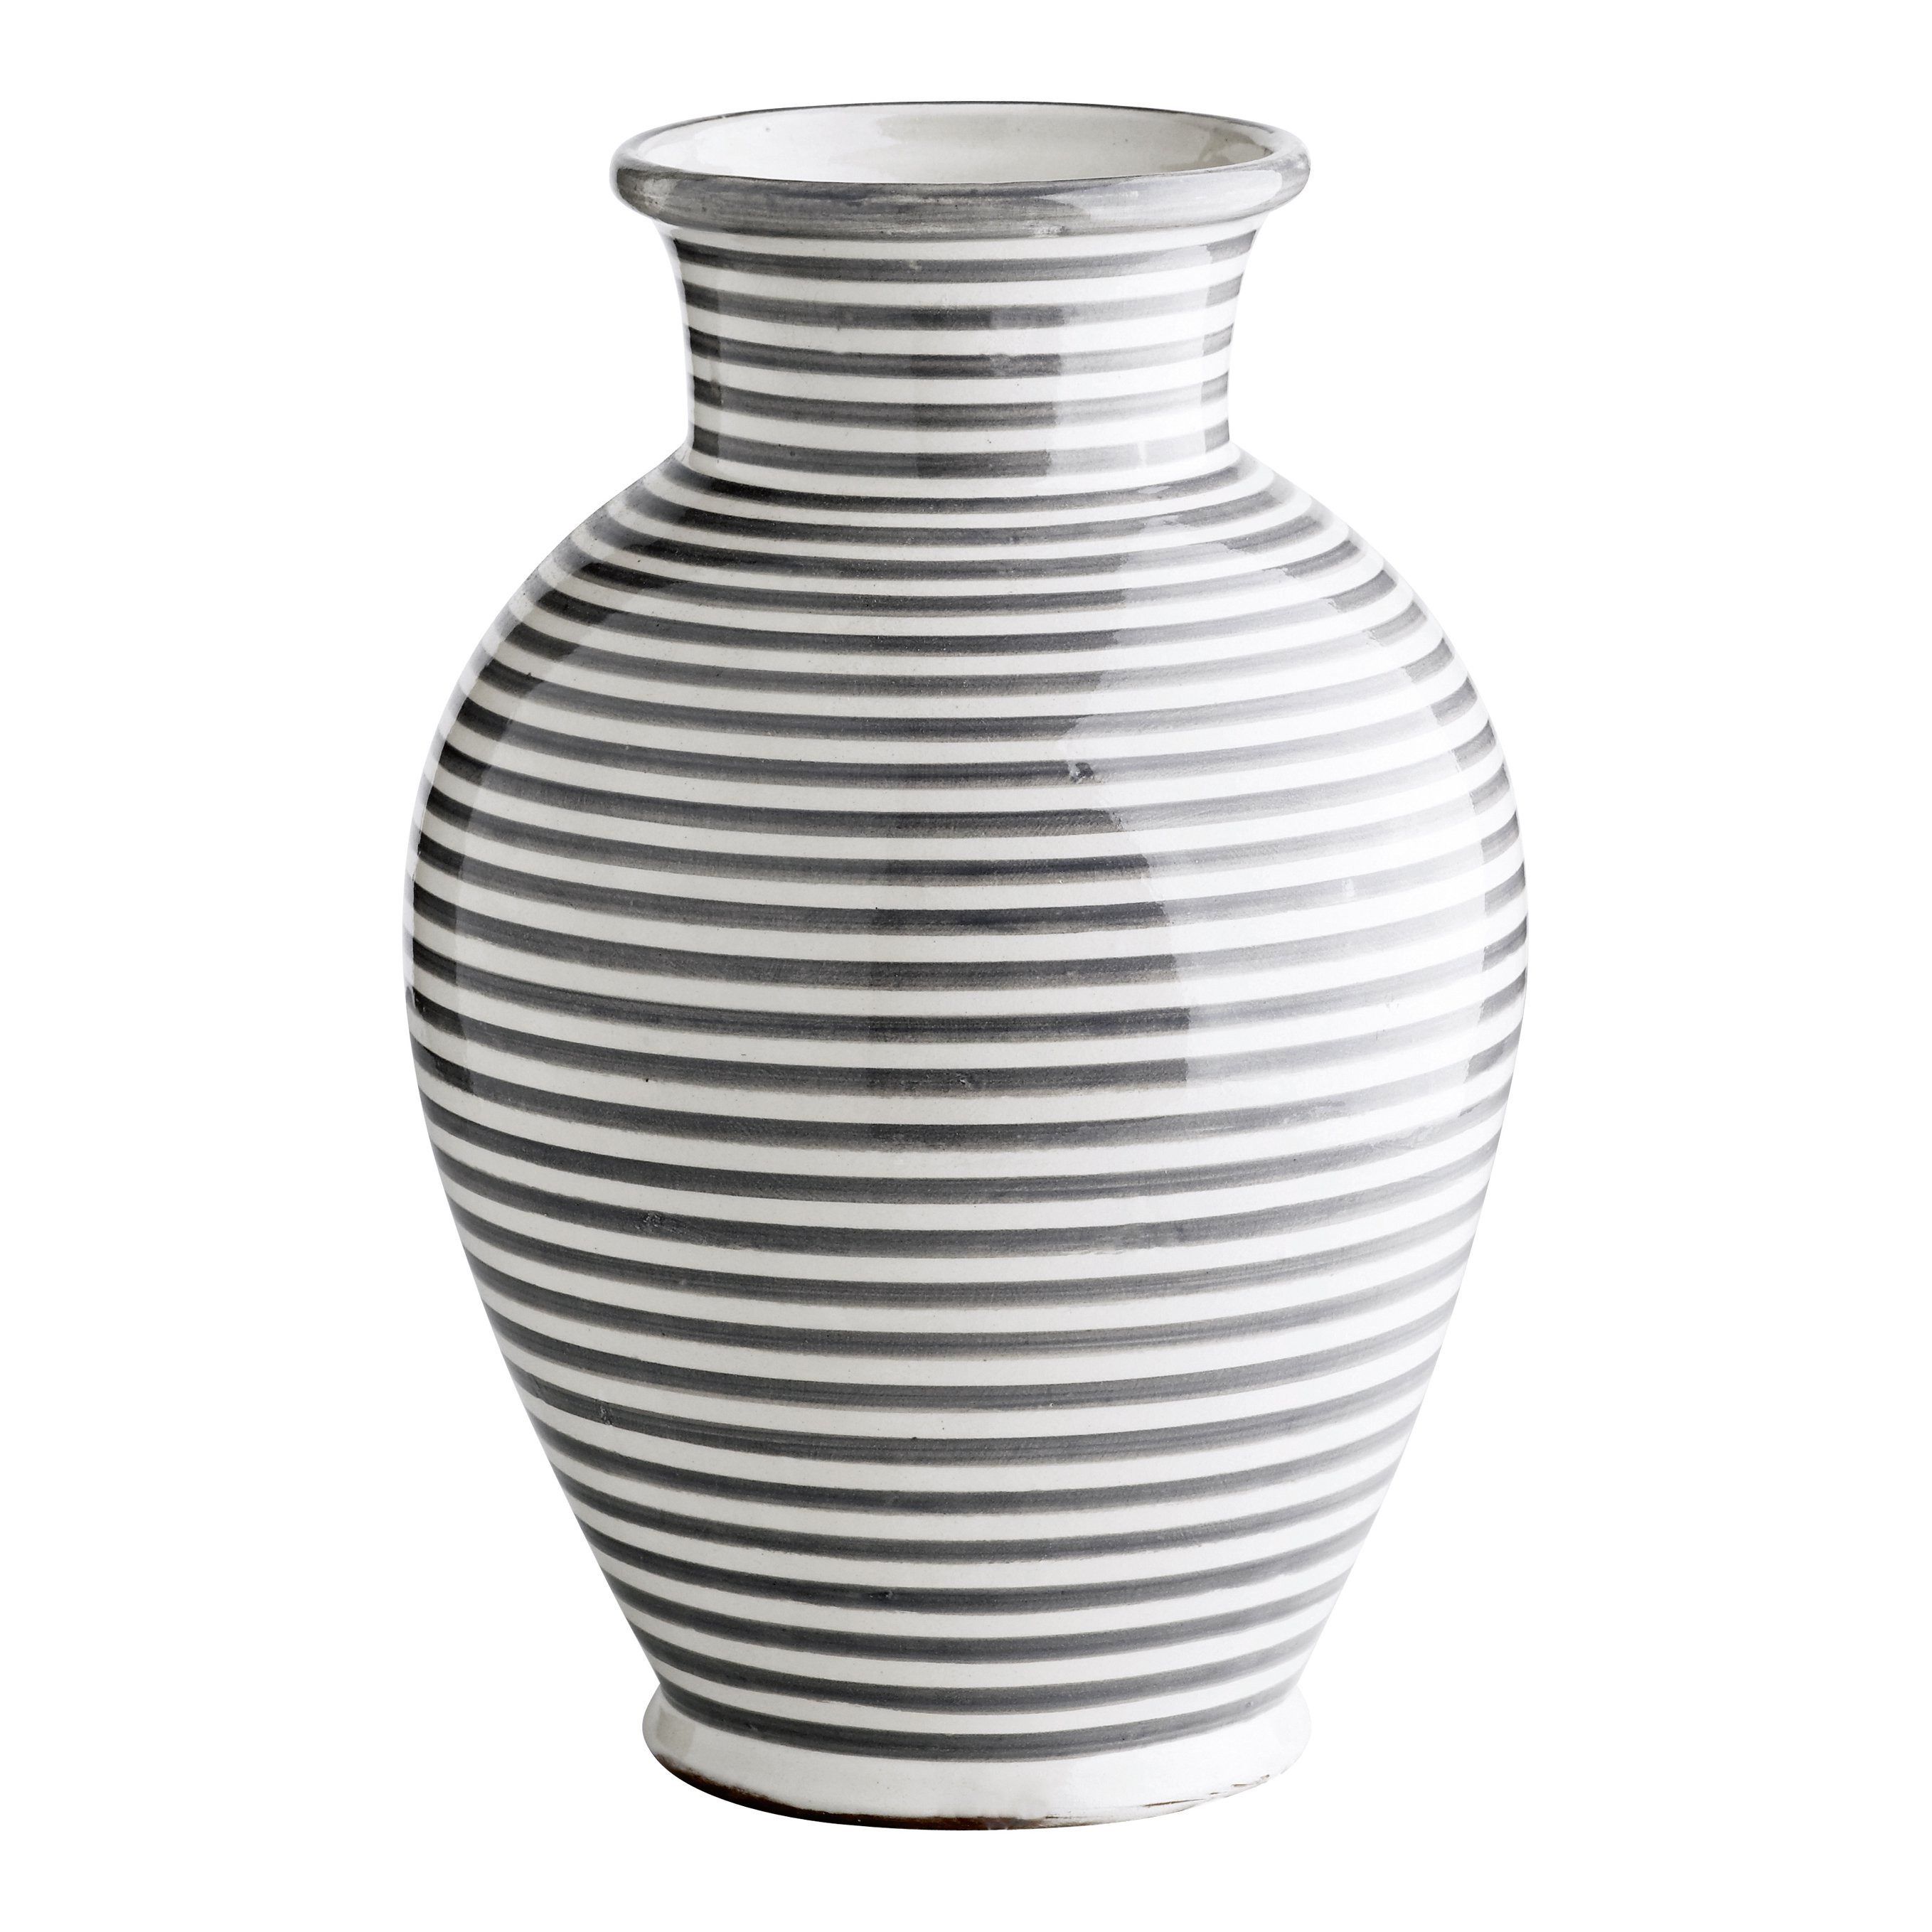 wedgwood small blue vase of black and white striped vase pics ceramics vases artificial with black and white striped vase pics ceramics